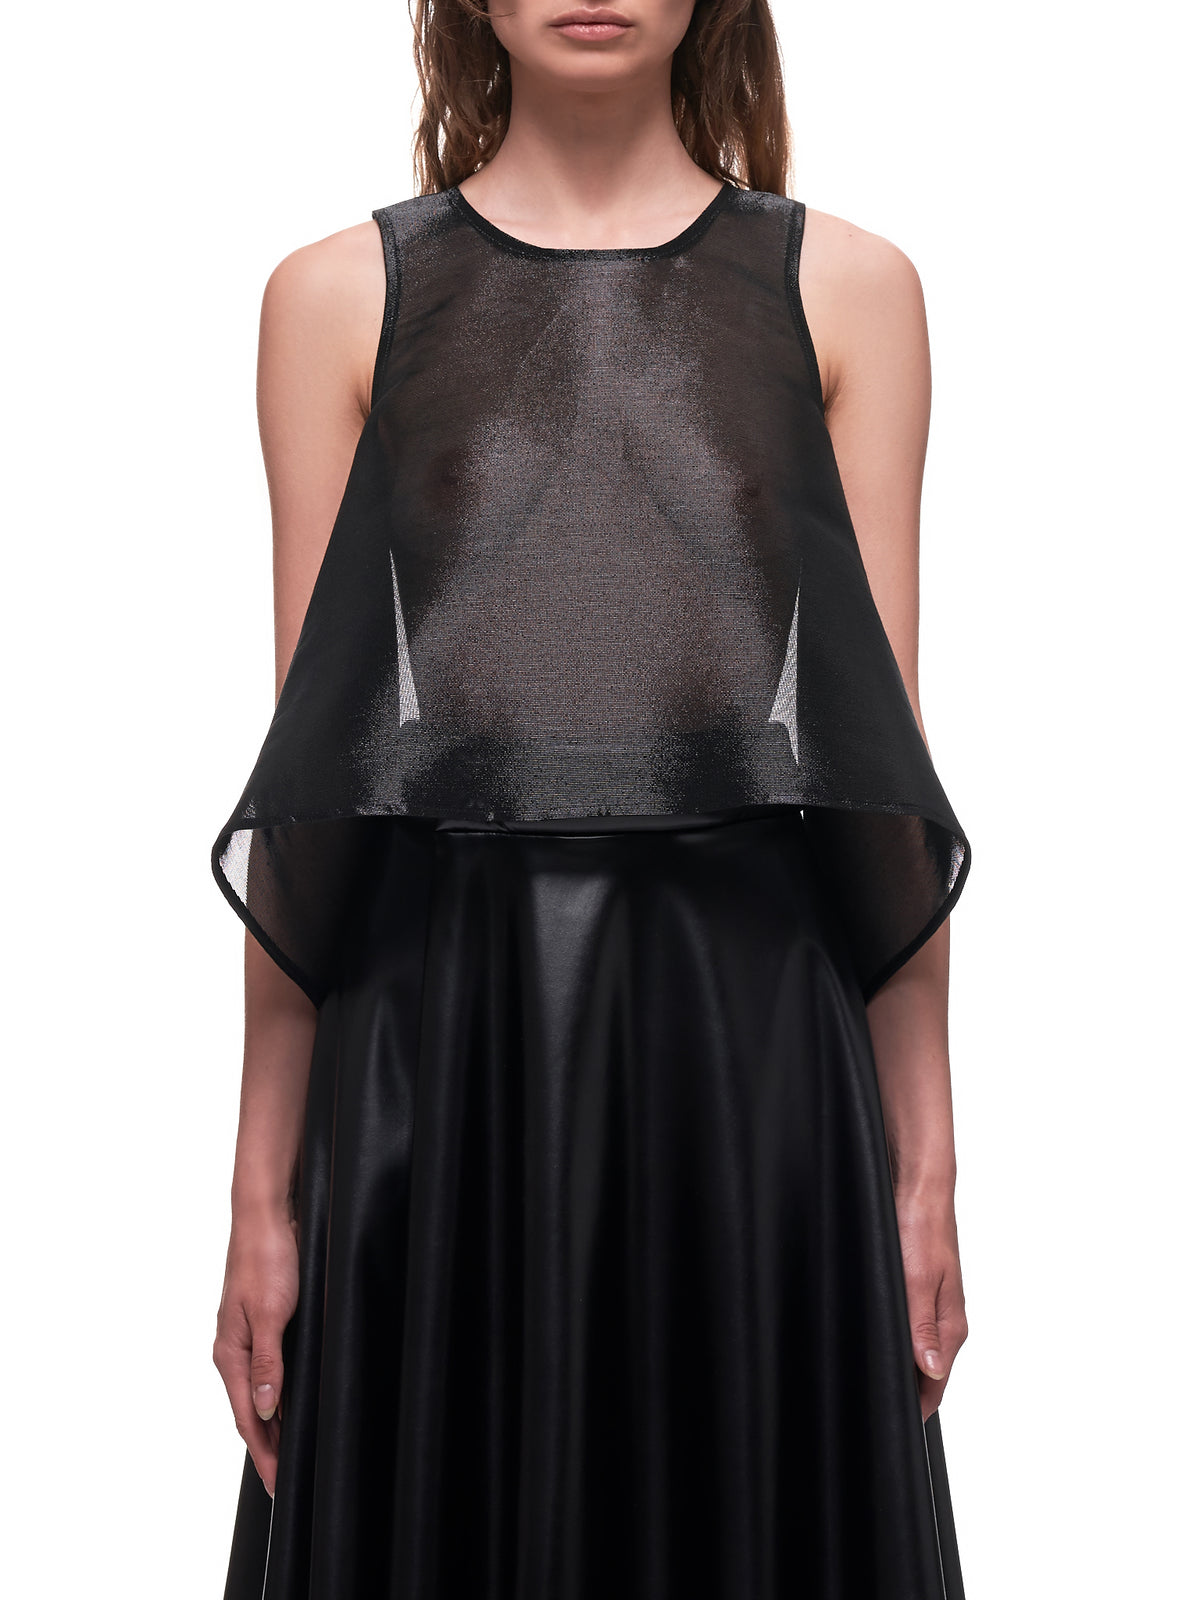 A-Line Transparent Top (18-A-LINE-BLACK-COTTON-NET)